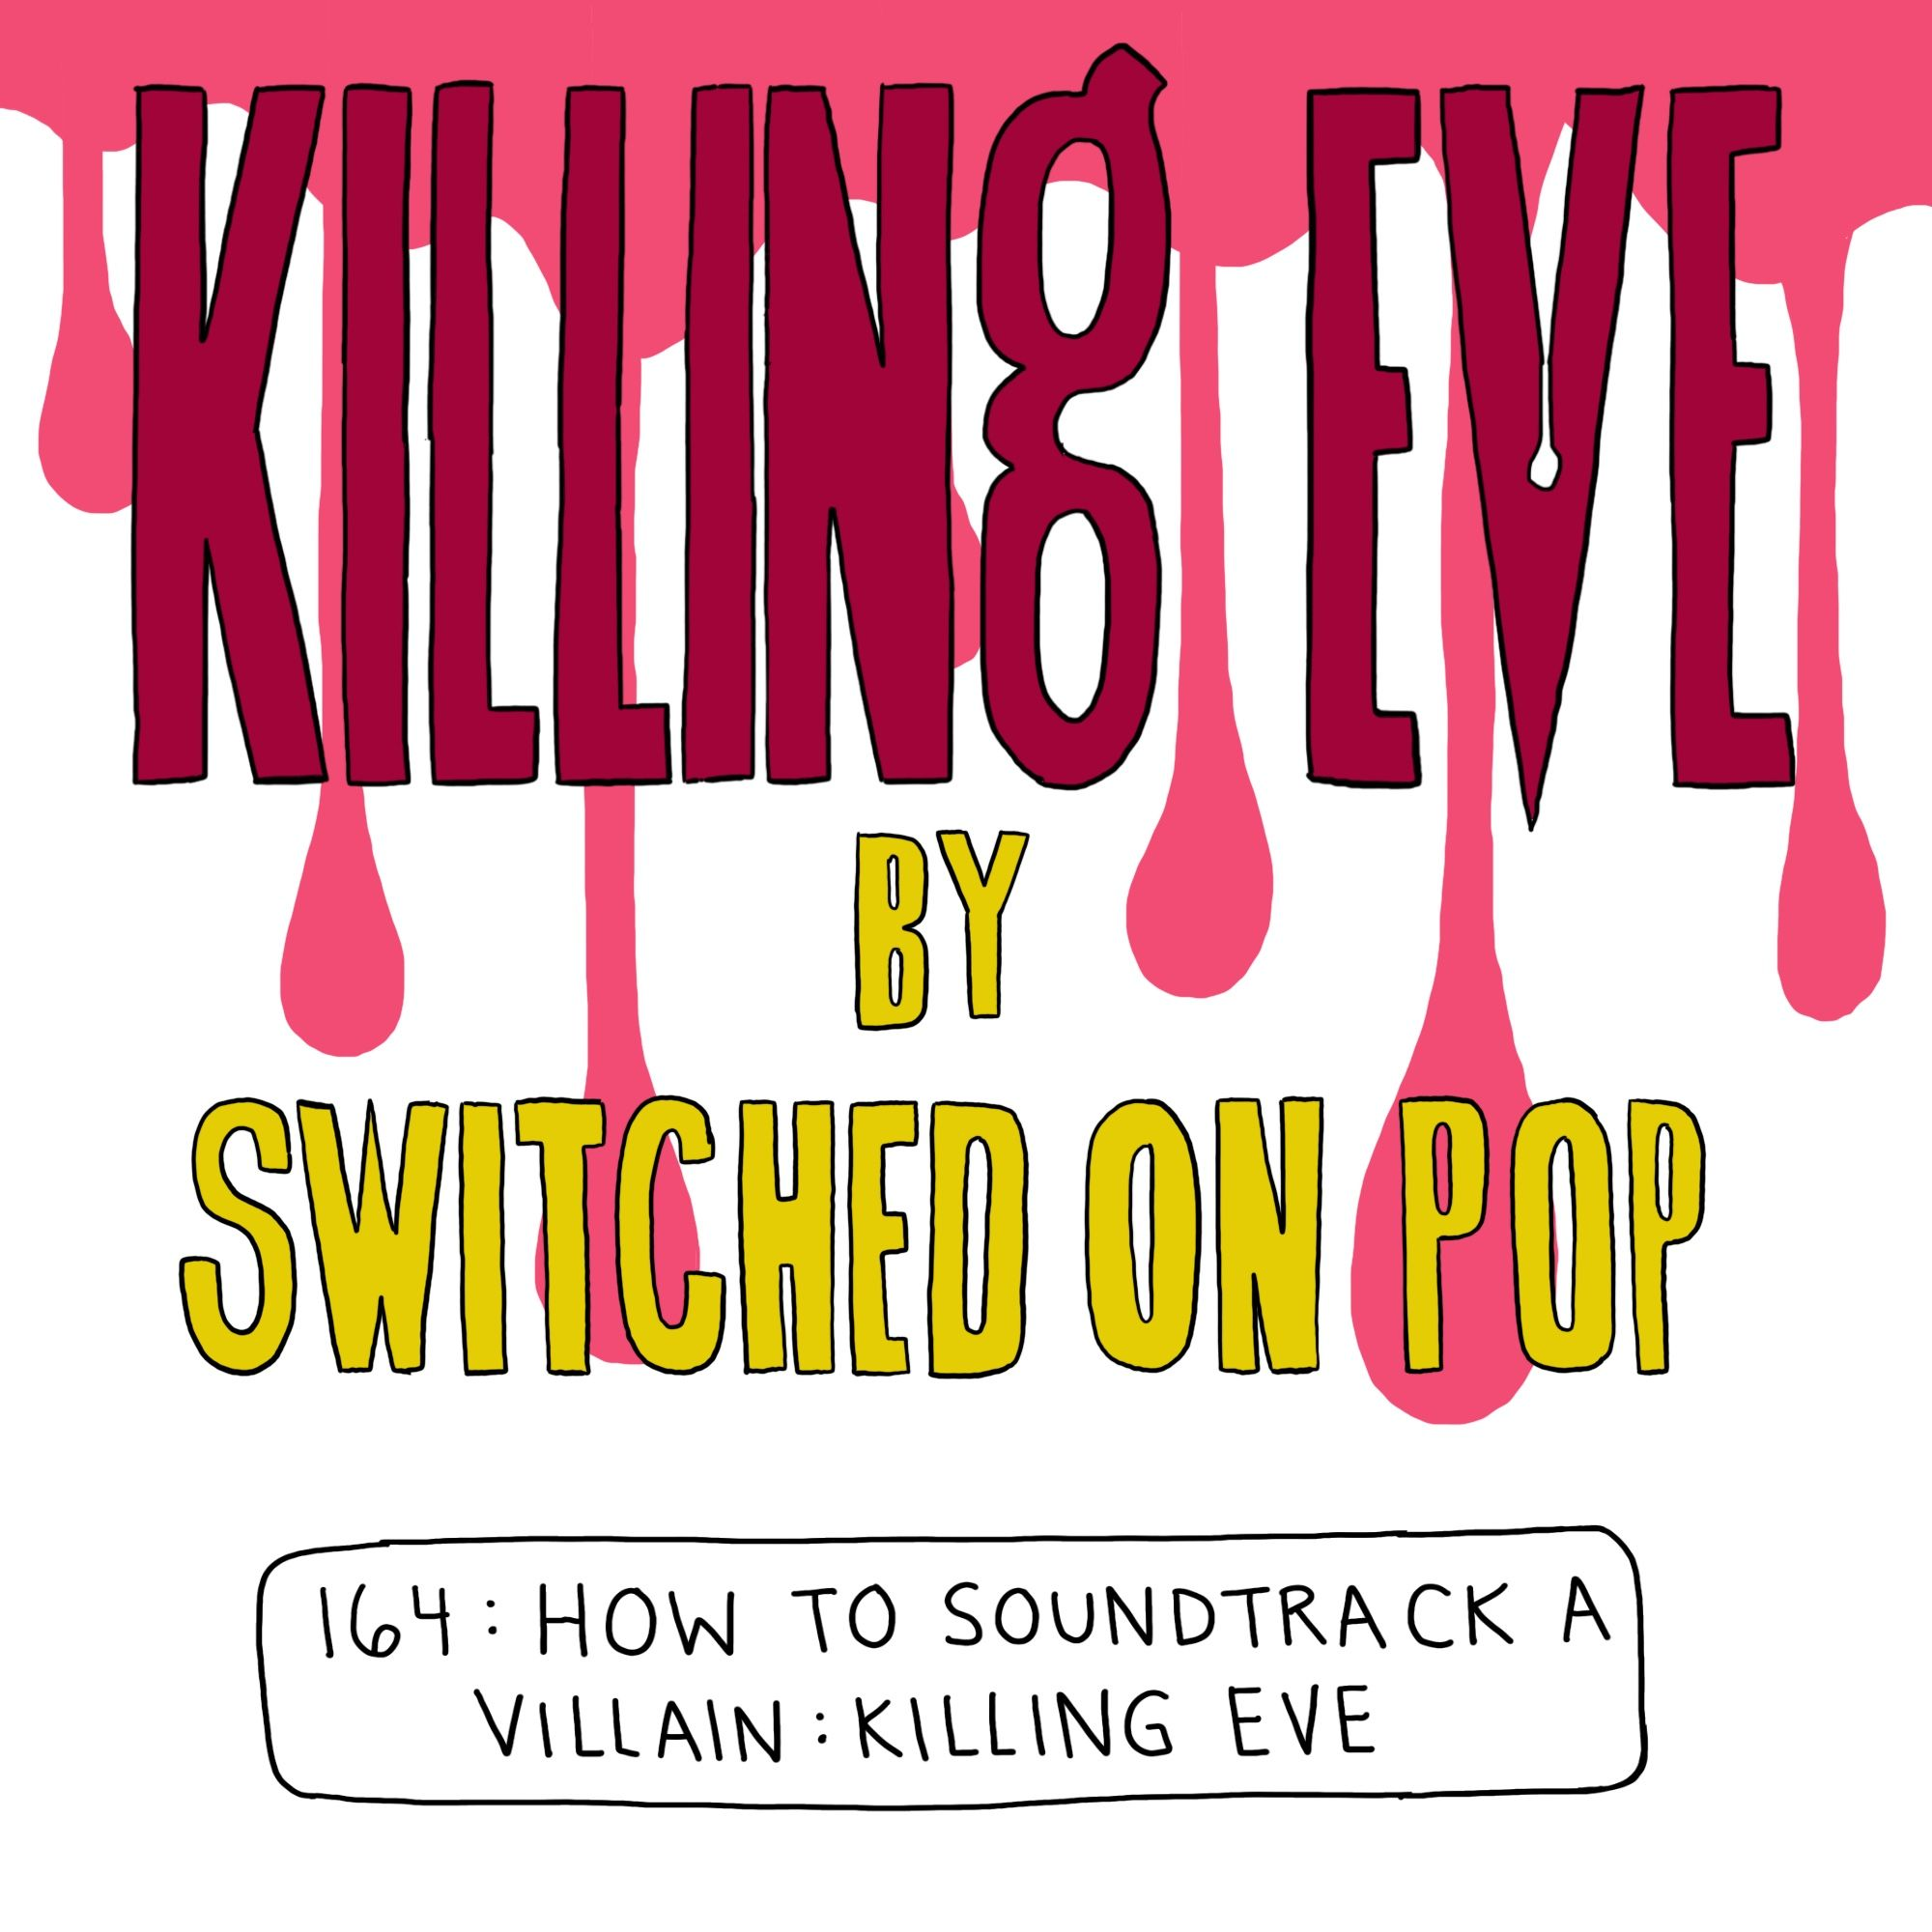 How To Soundtrack A Villain: Killing Eve